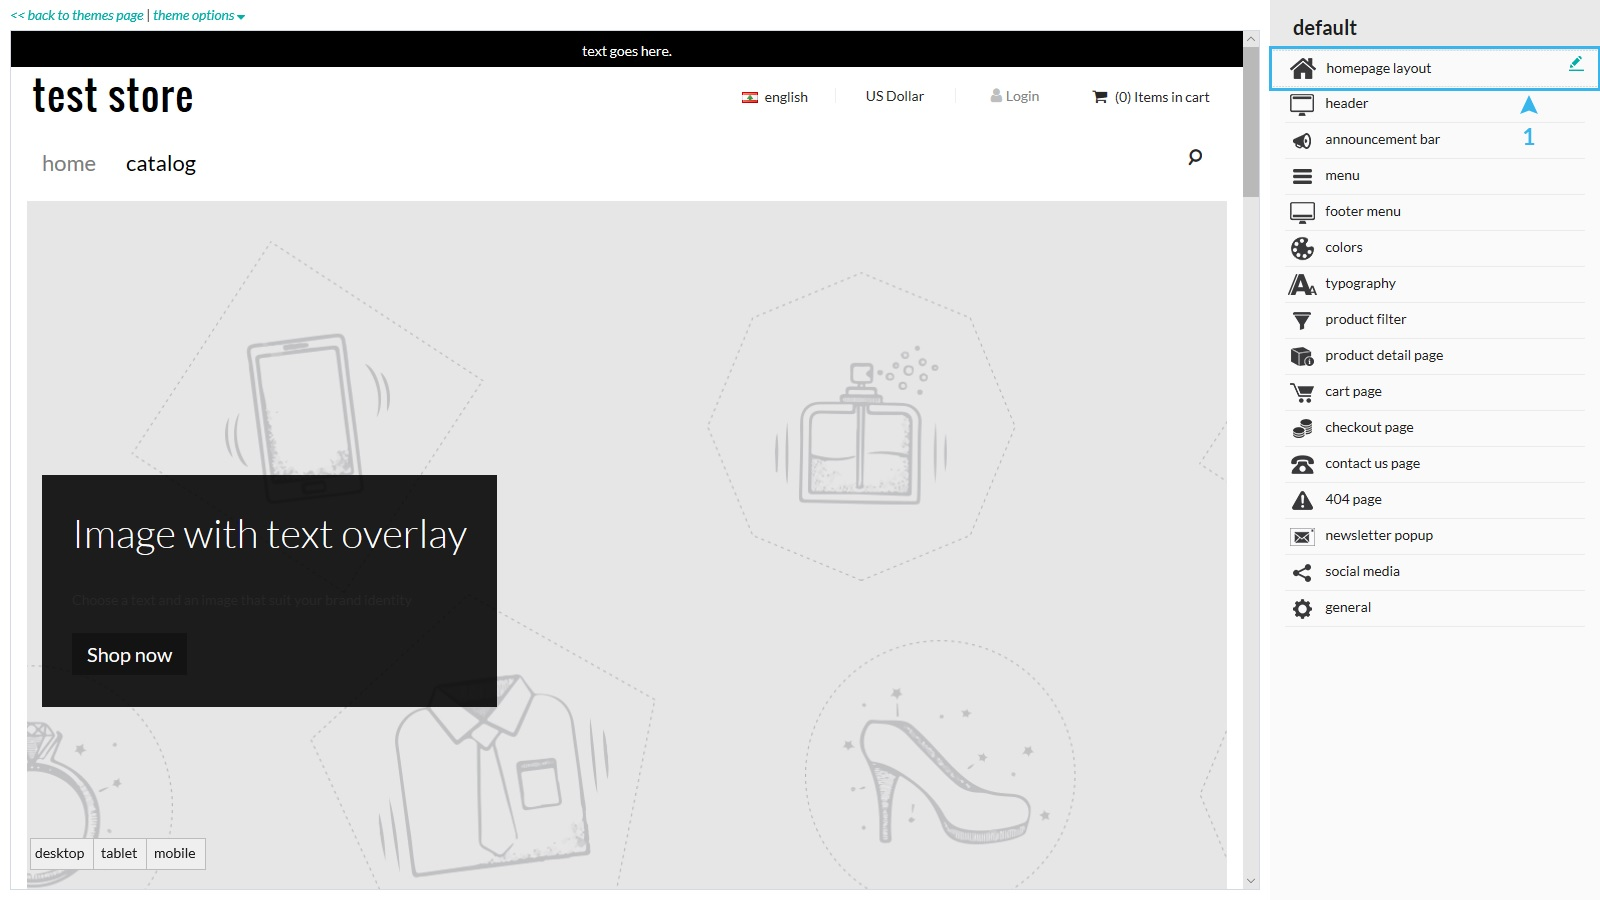 ecommerce software - advanced ecommerce website builder tailored for